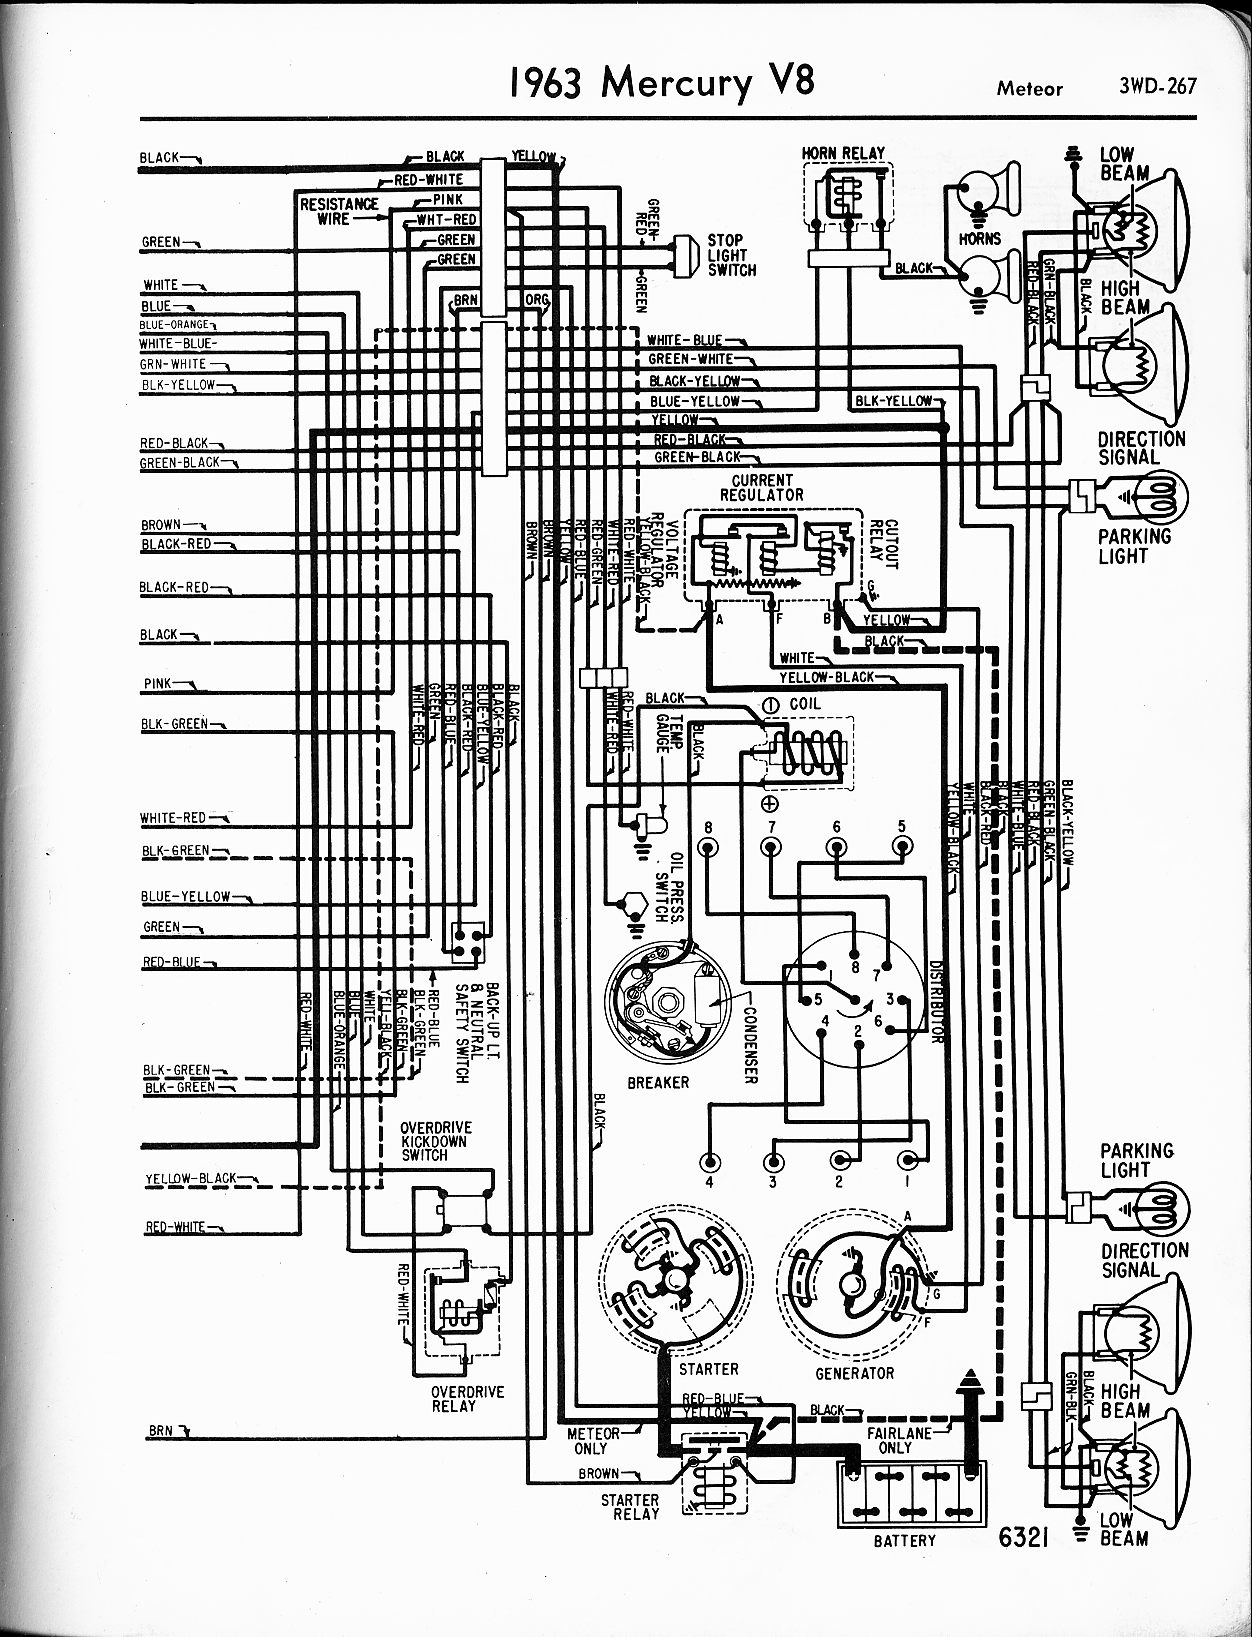 Mercury wiring diagrams the old car manual project rh oldcarmanualproject 1963 chevy nova wiring diagram